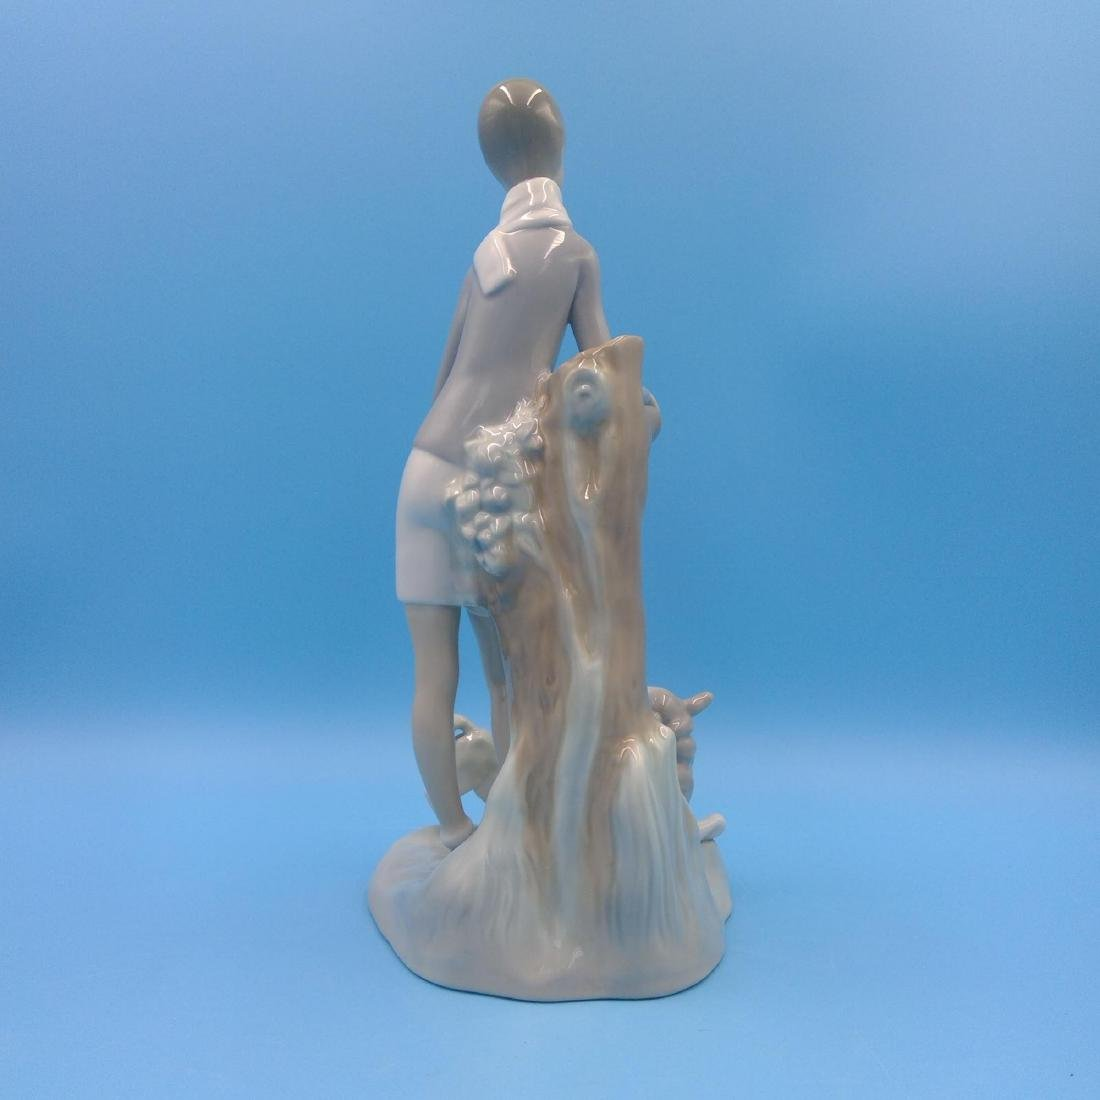 LLADRO PORCELAIN FIGURINE BOY WITH LAMBS - 3